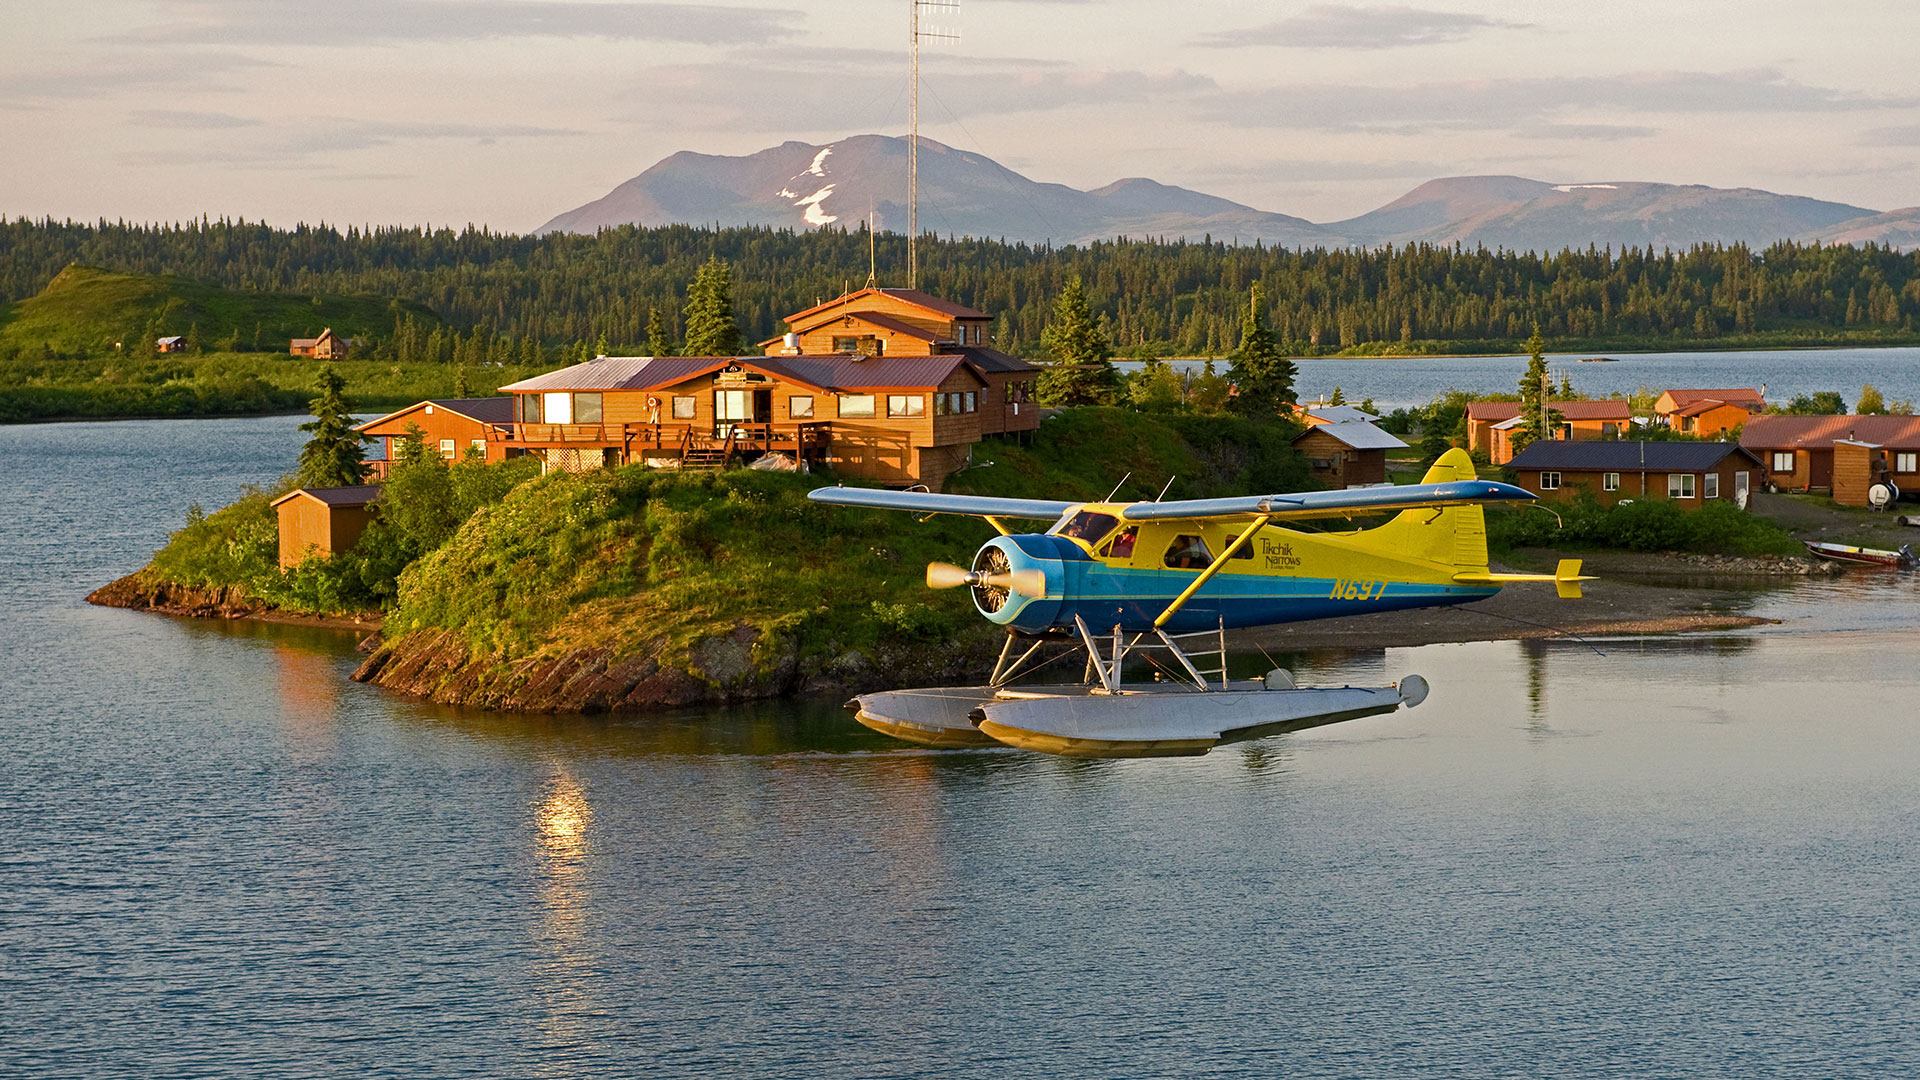 Luxury Alaska Fishing Vacation: What do you need to know?